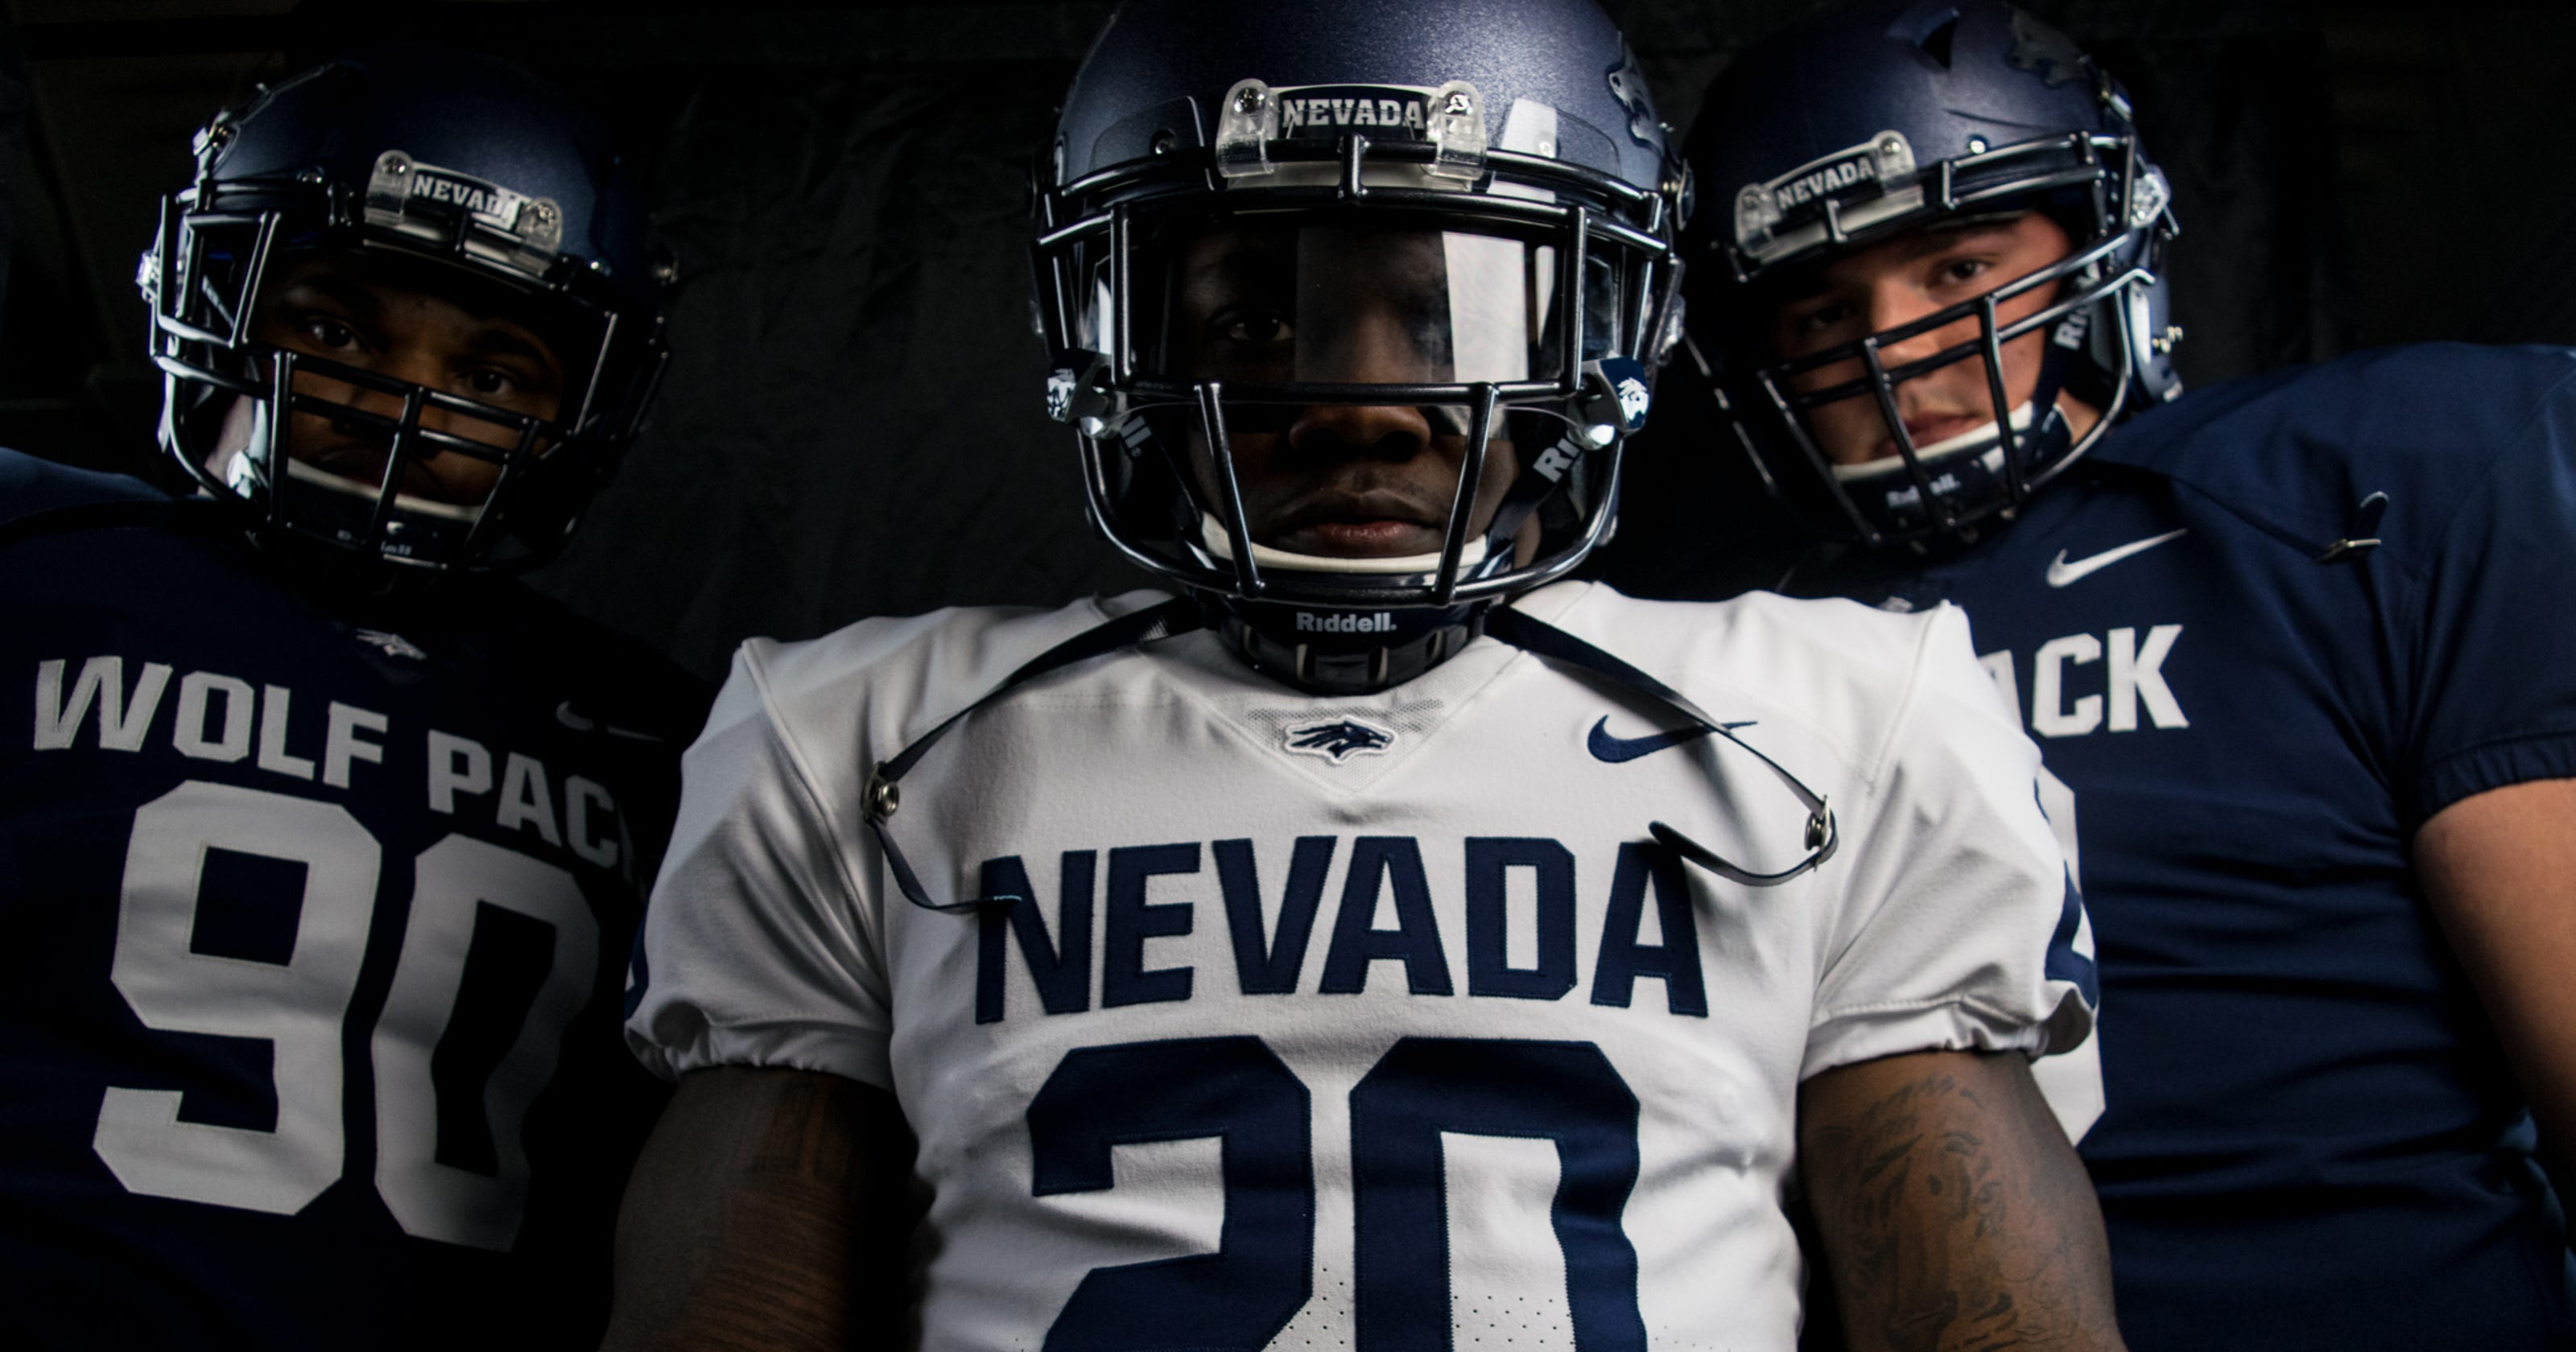 info for 89824 eb9fb See the Wolf Pack football team's new jerseys